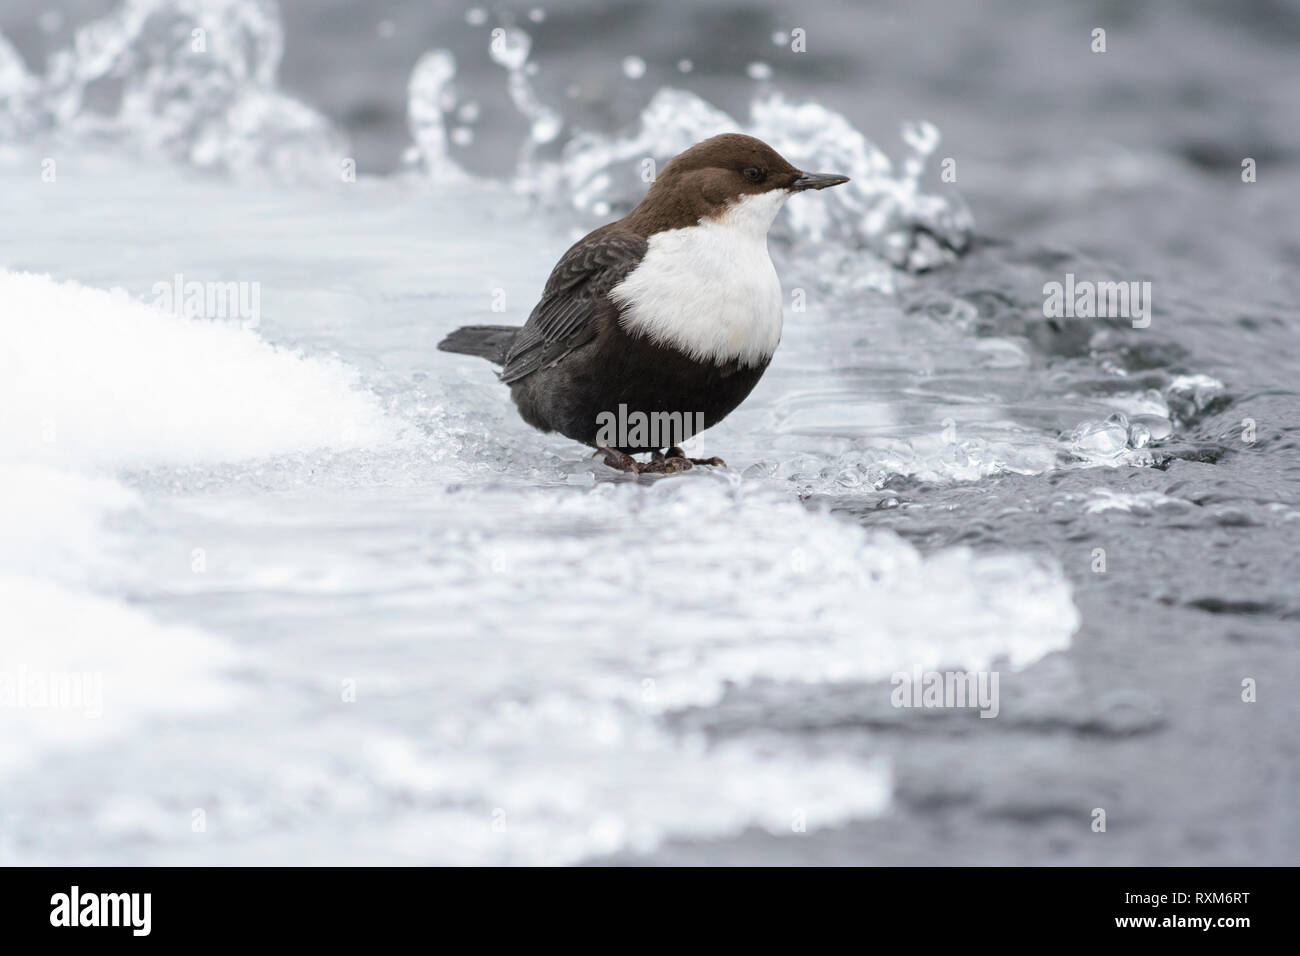 Black-bellied dipper on ice in a streaming river, Kuusamo, Finland - Stock Image